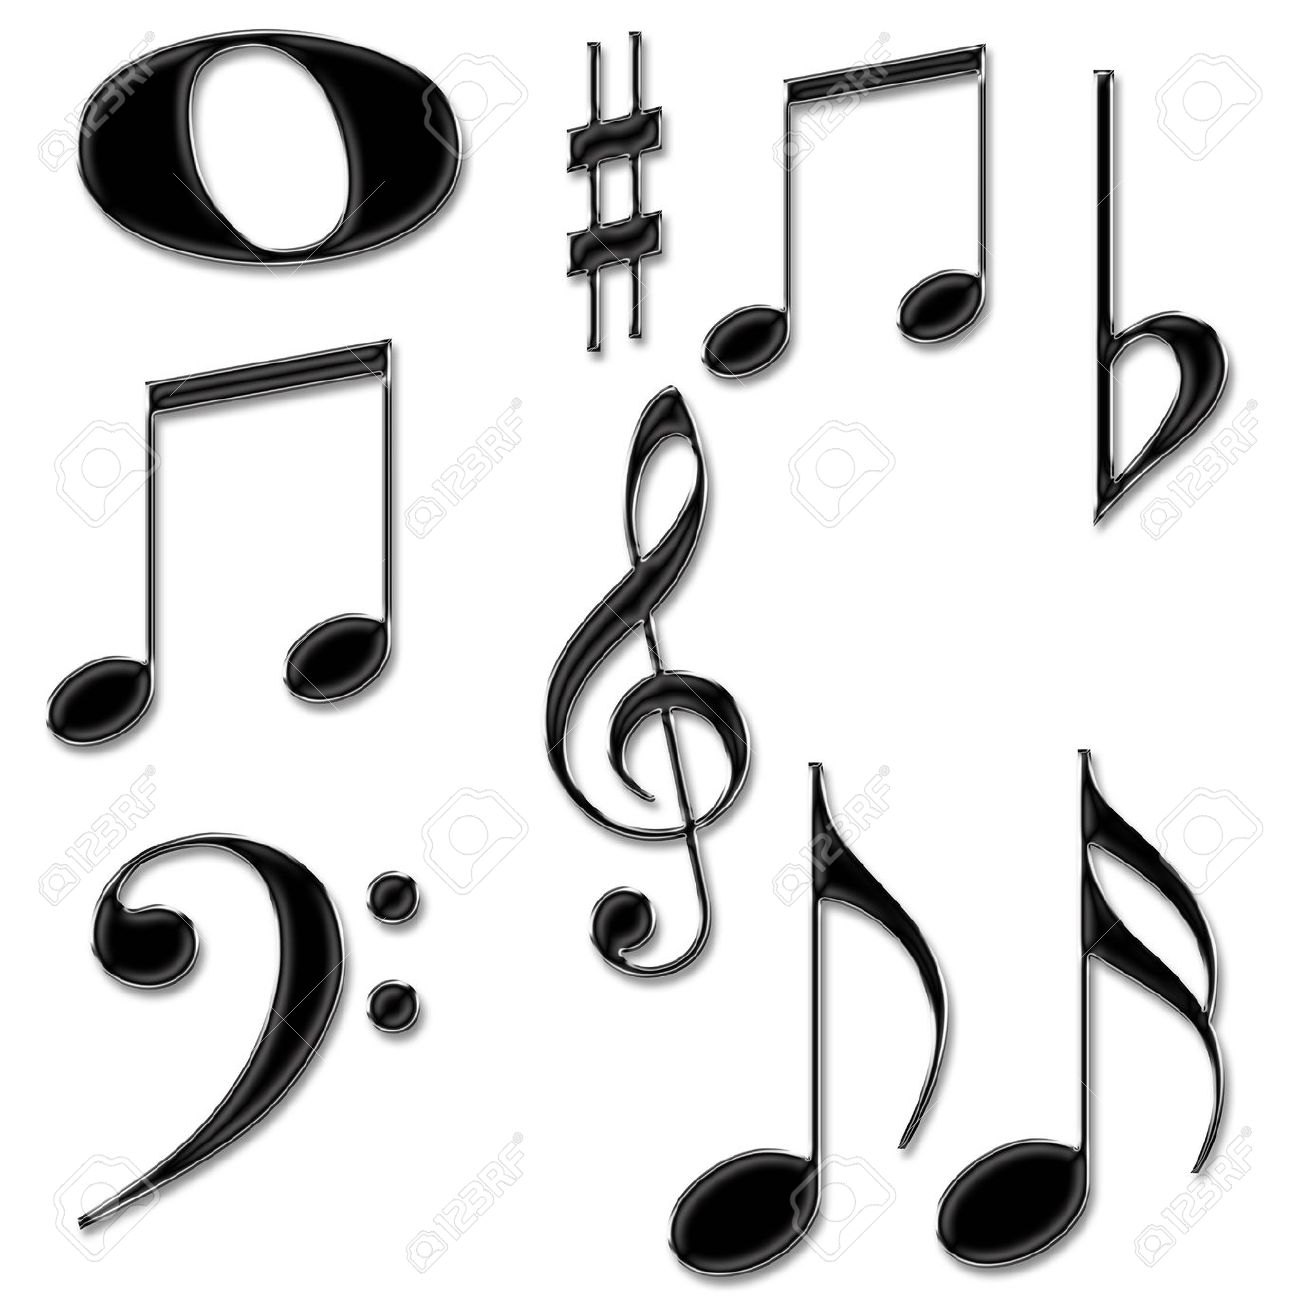 Music Notes Symbols Isolated On A White Background Stock Photo